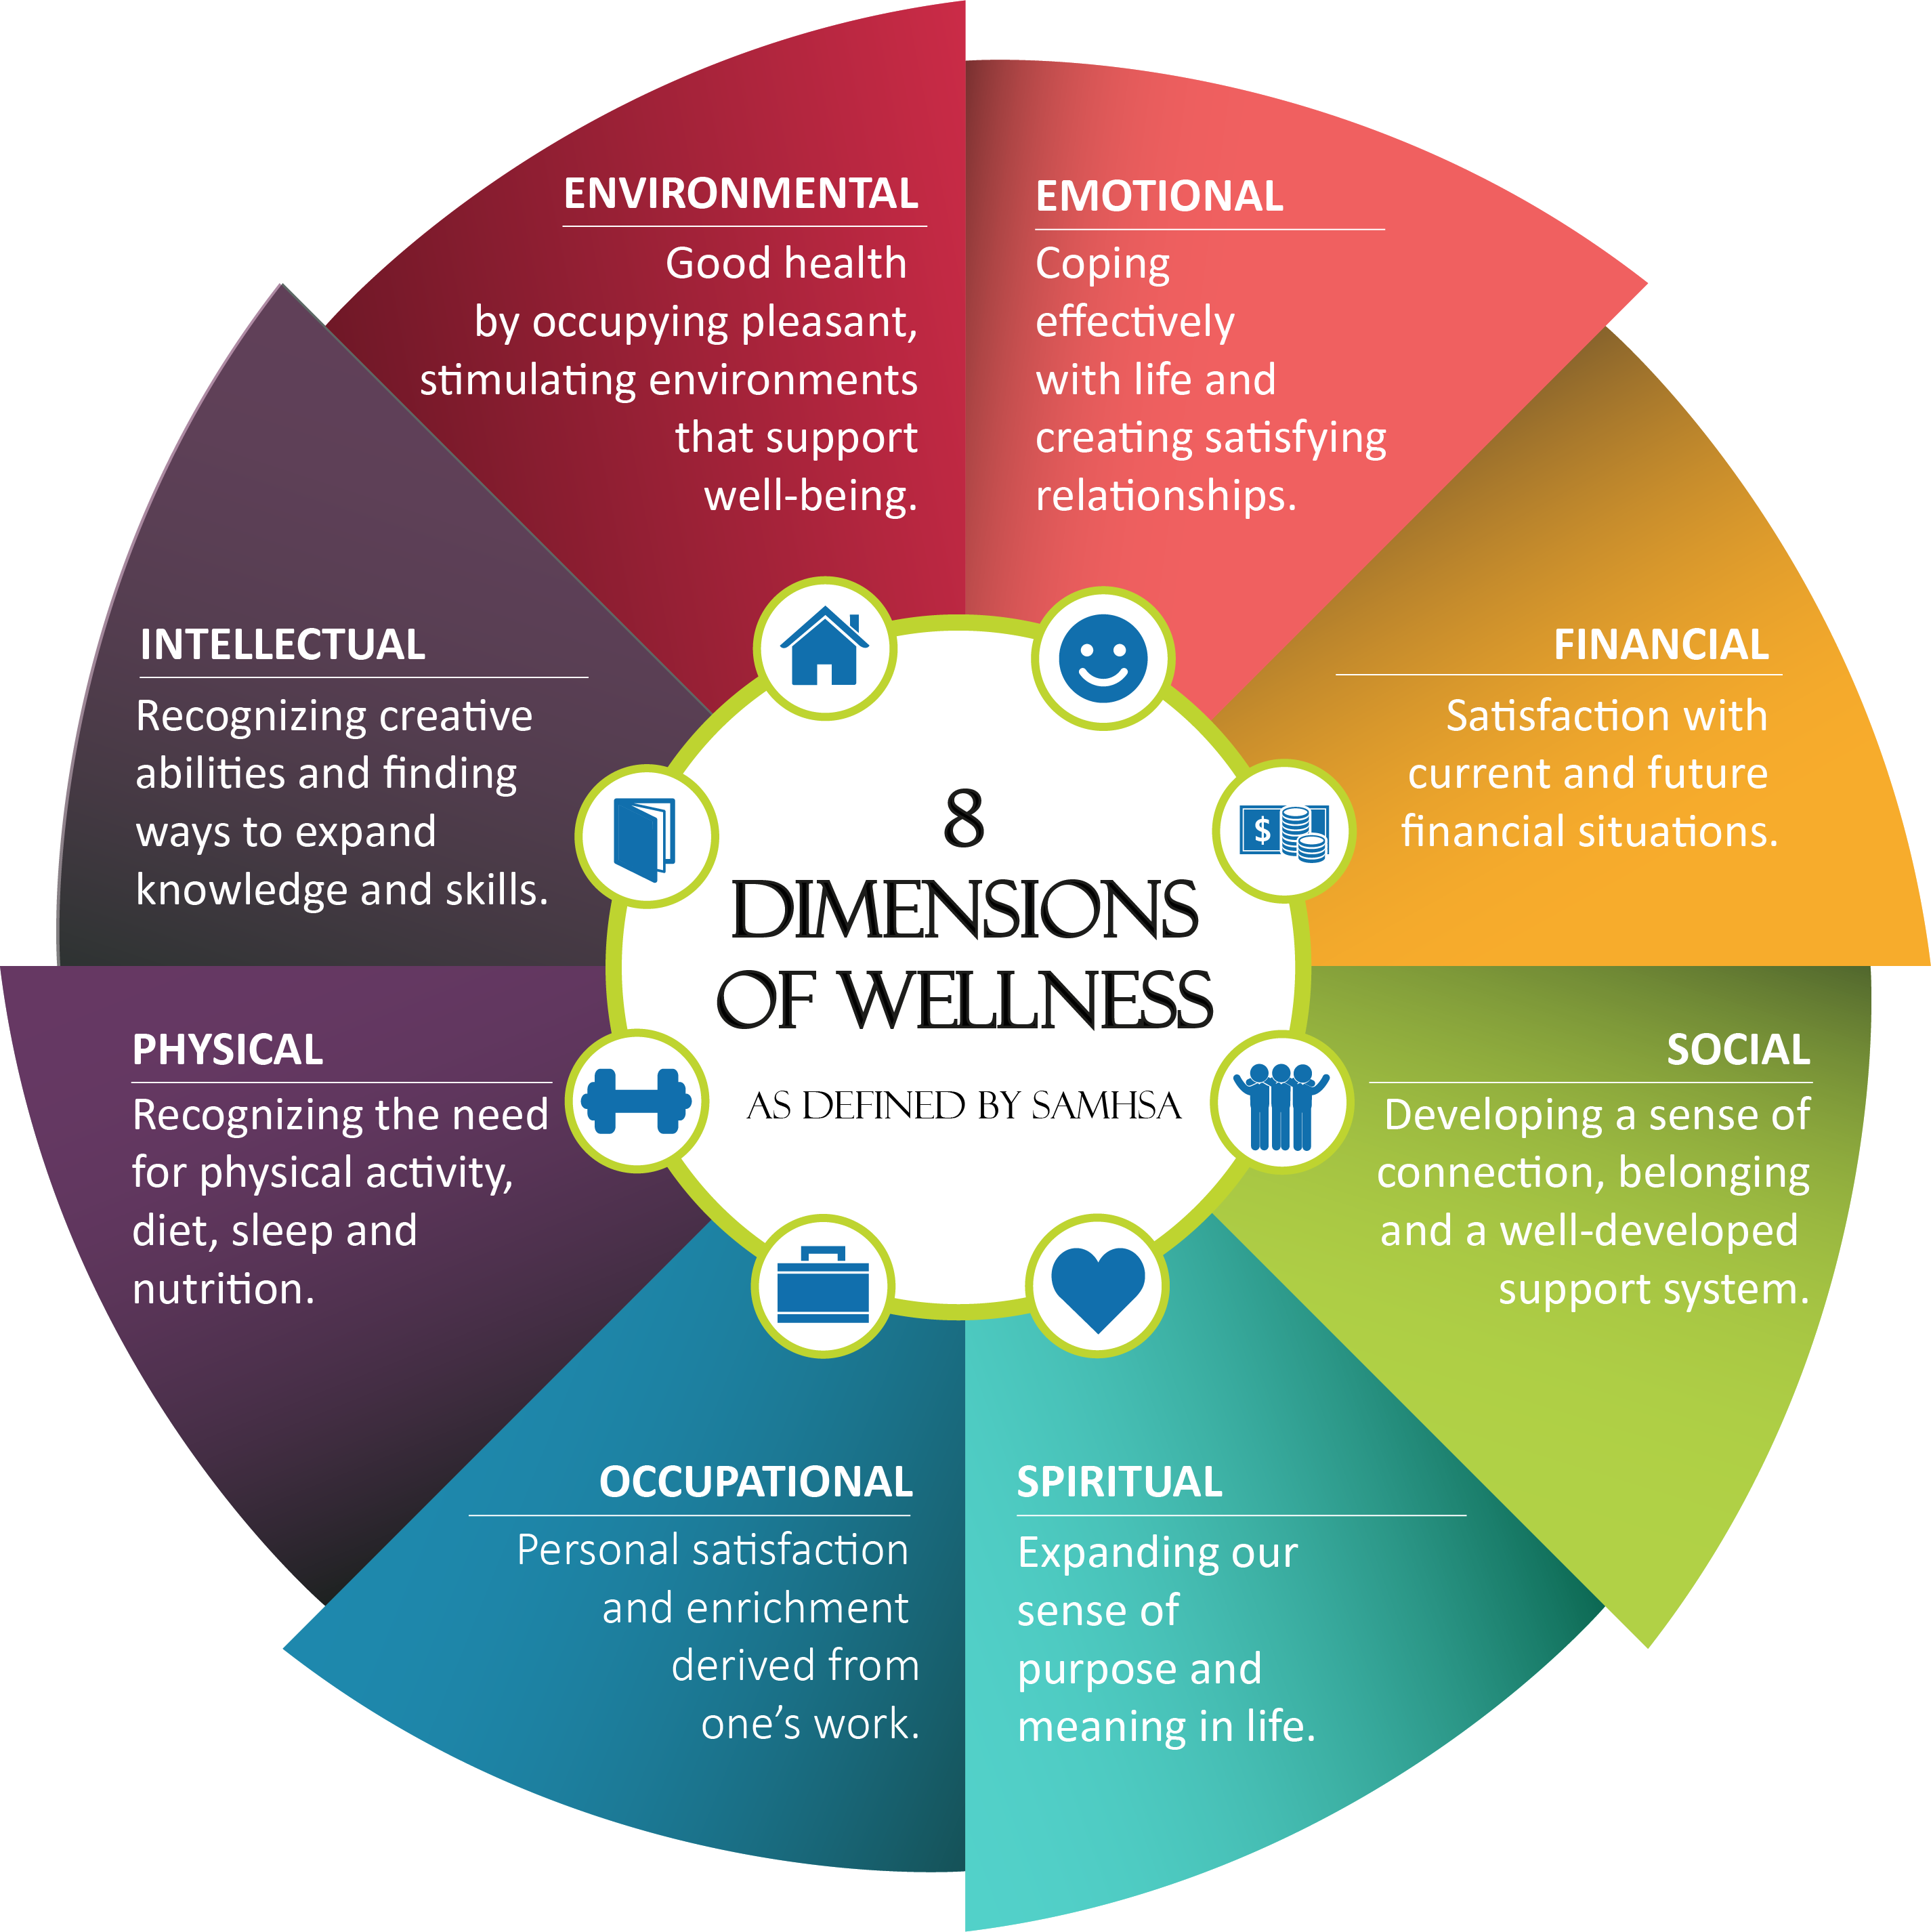 Substance Abuse and Mental Health Services Administation, 8 dimensions of Mental Wellness